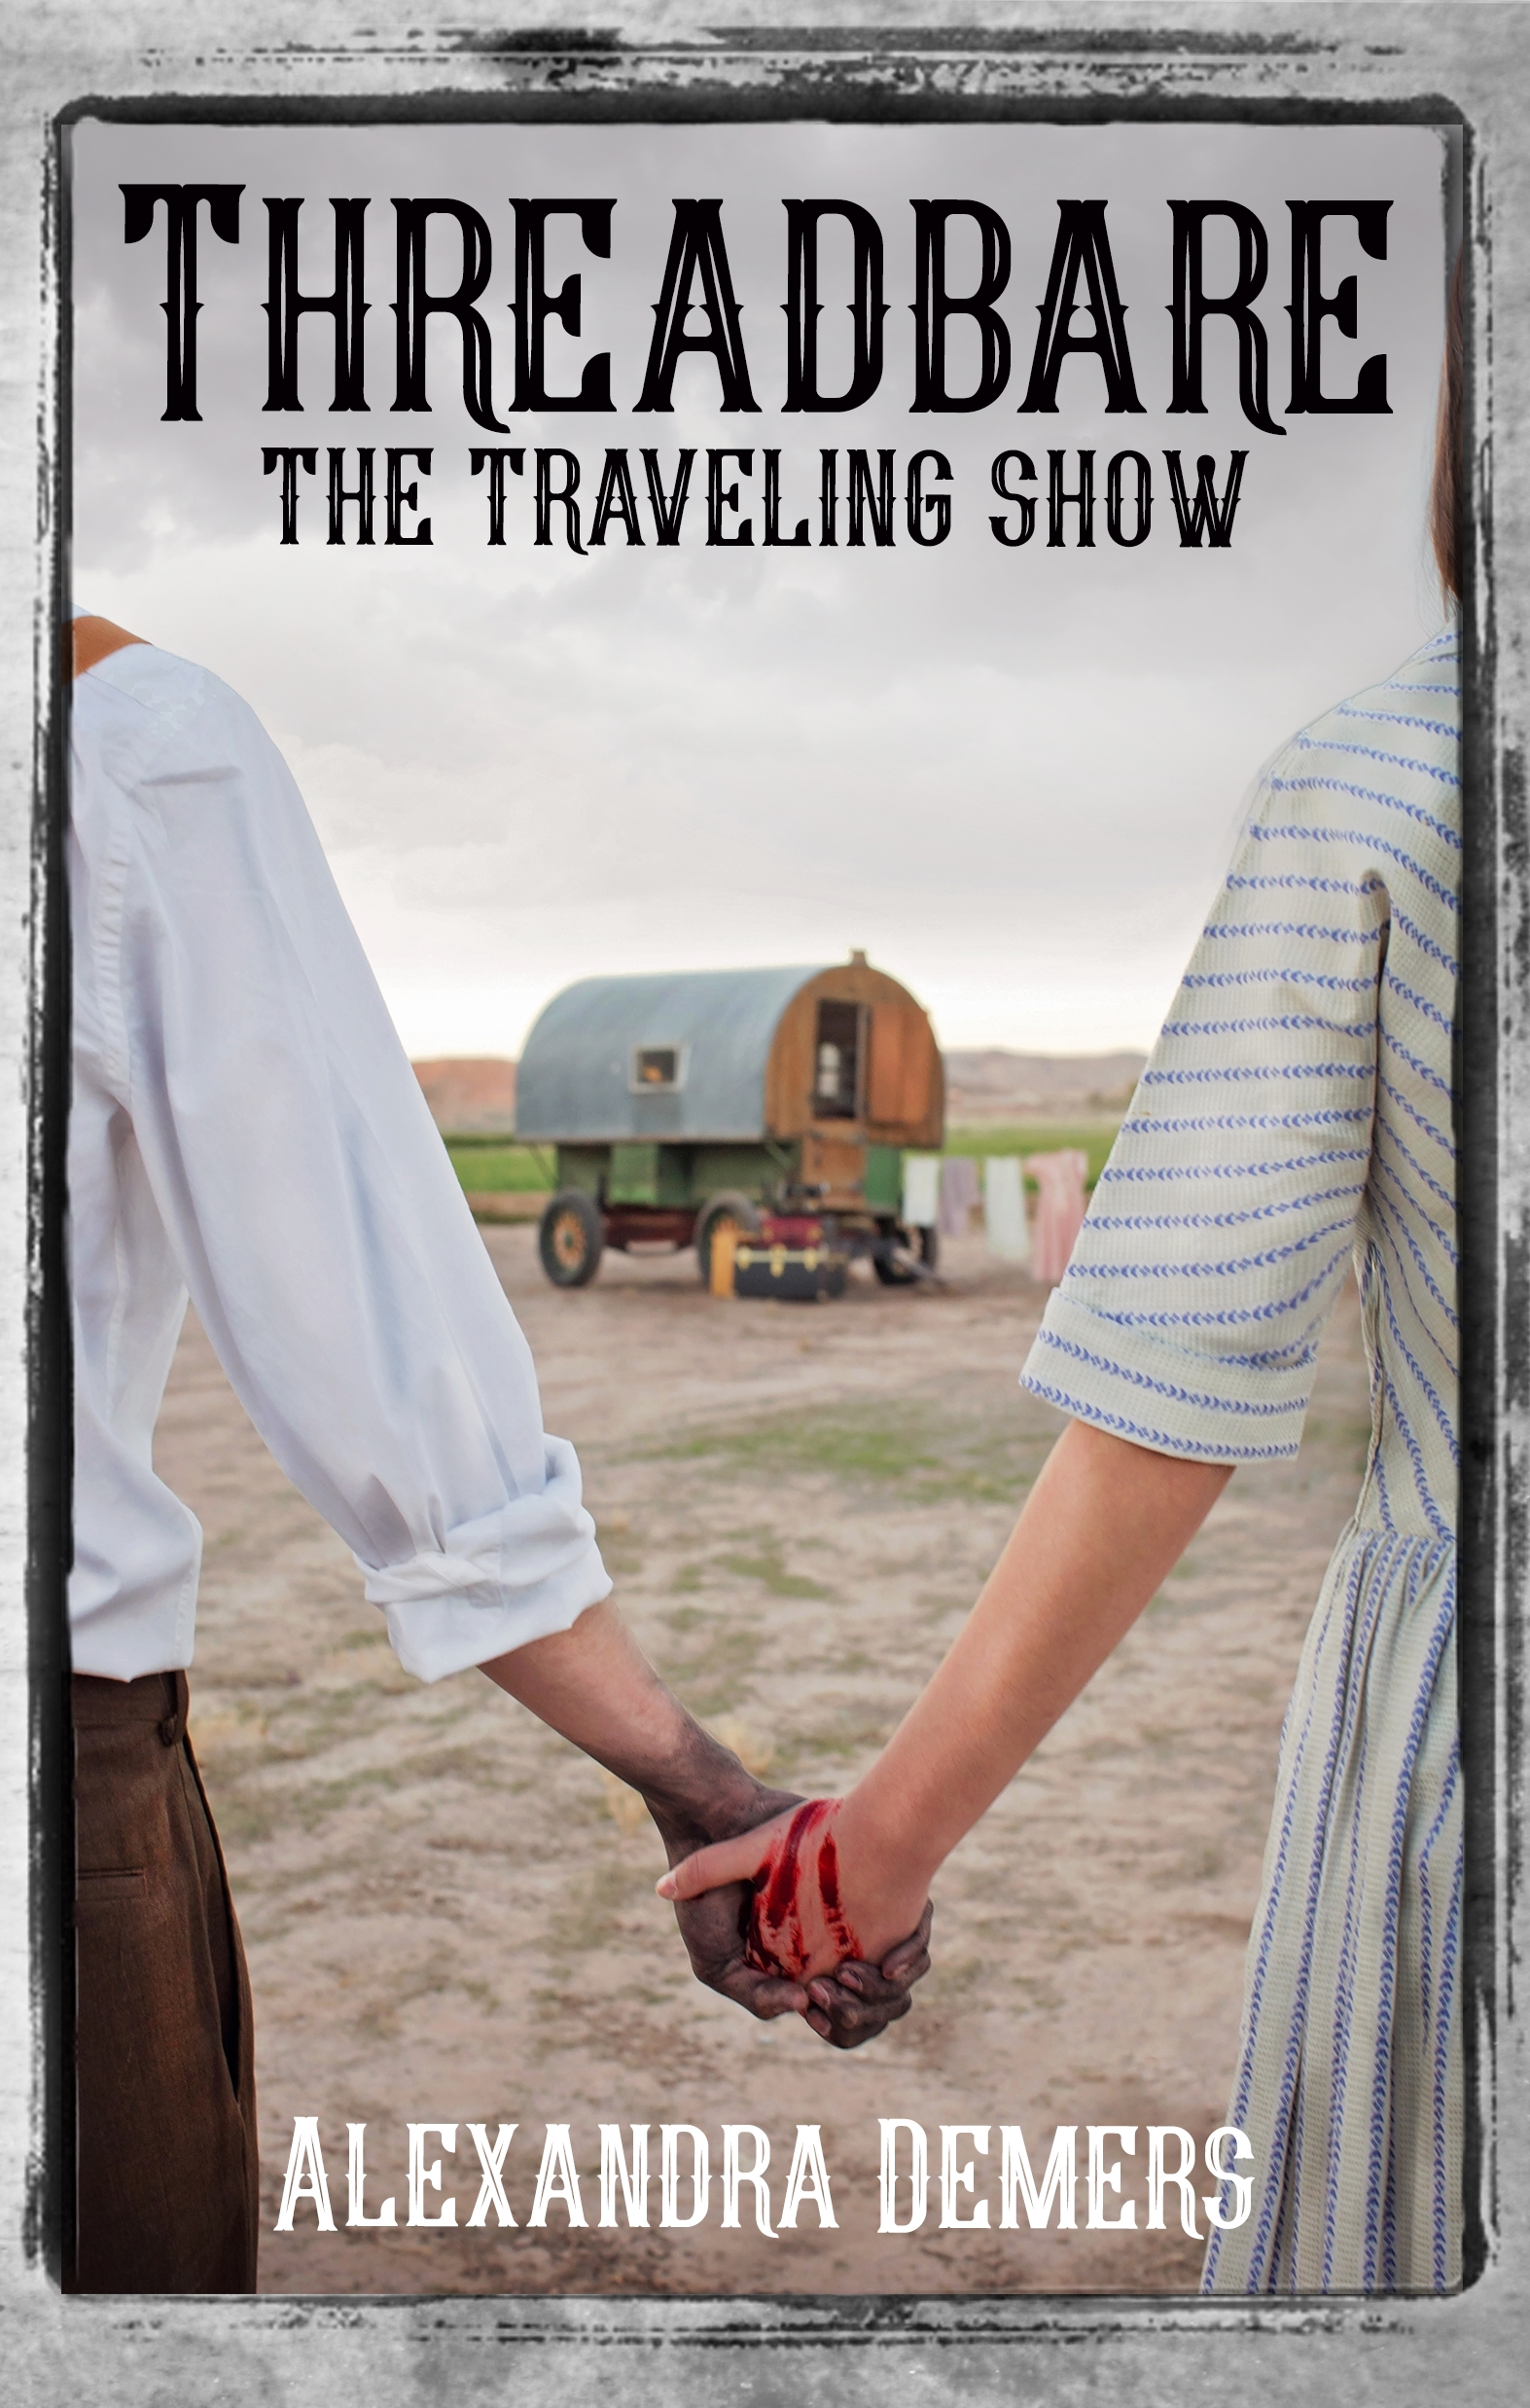 Threadbare: The Traveling Show